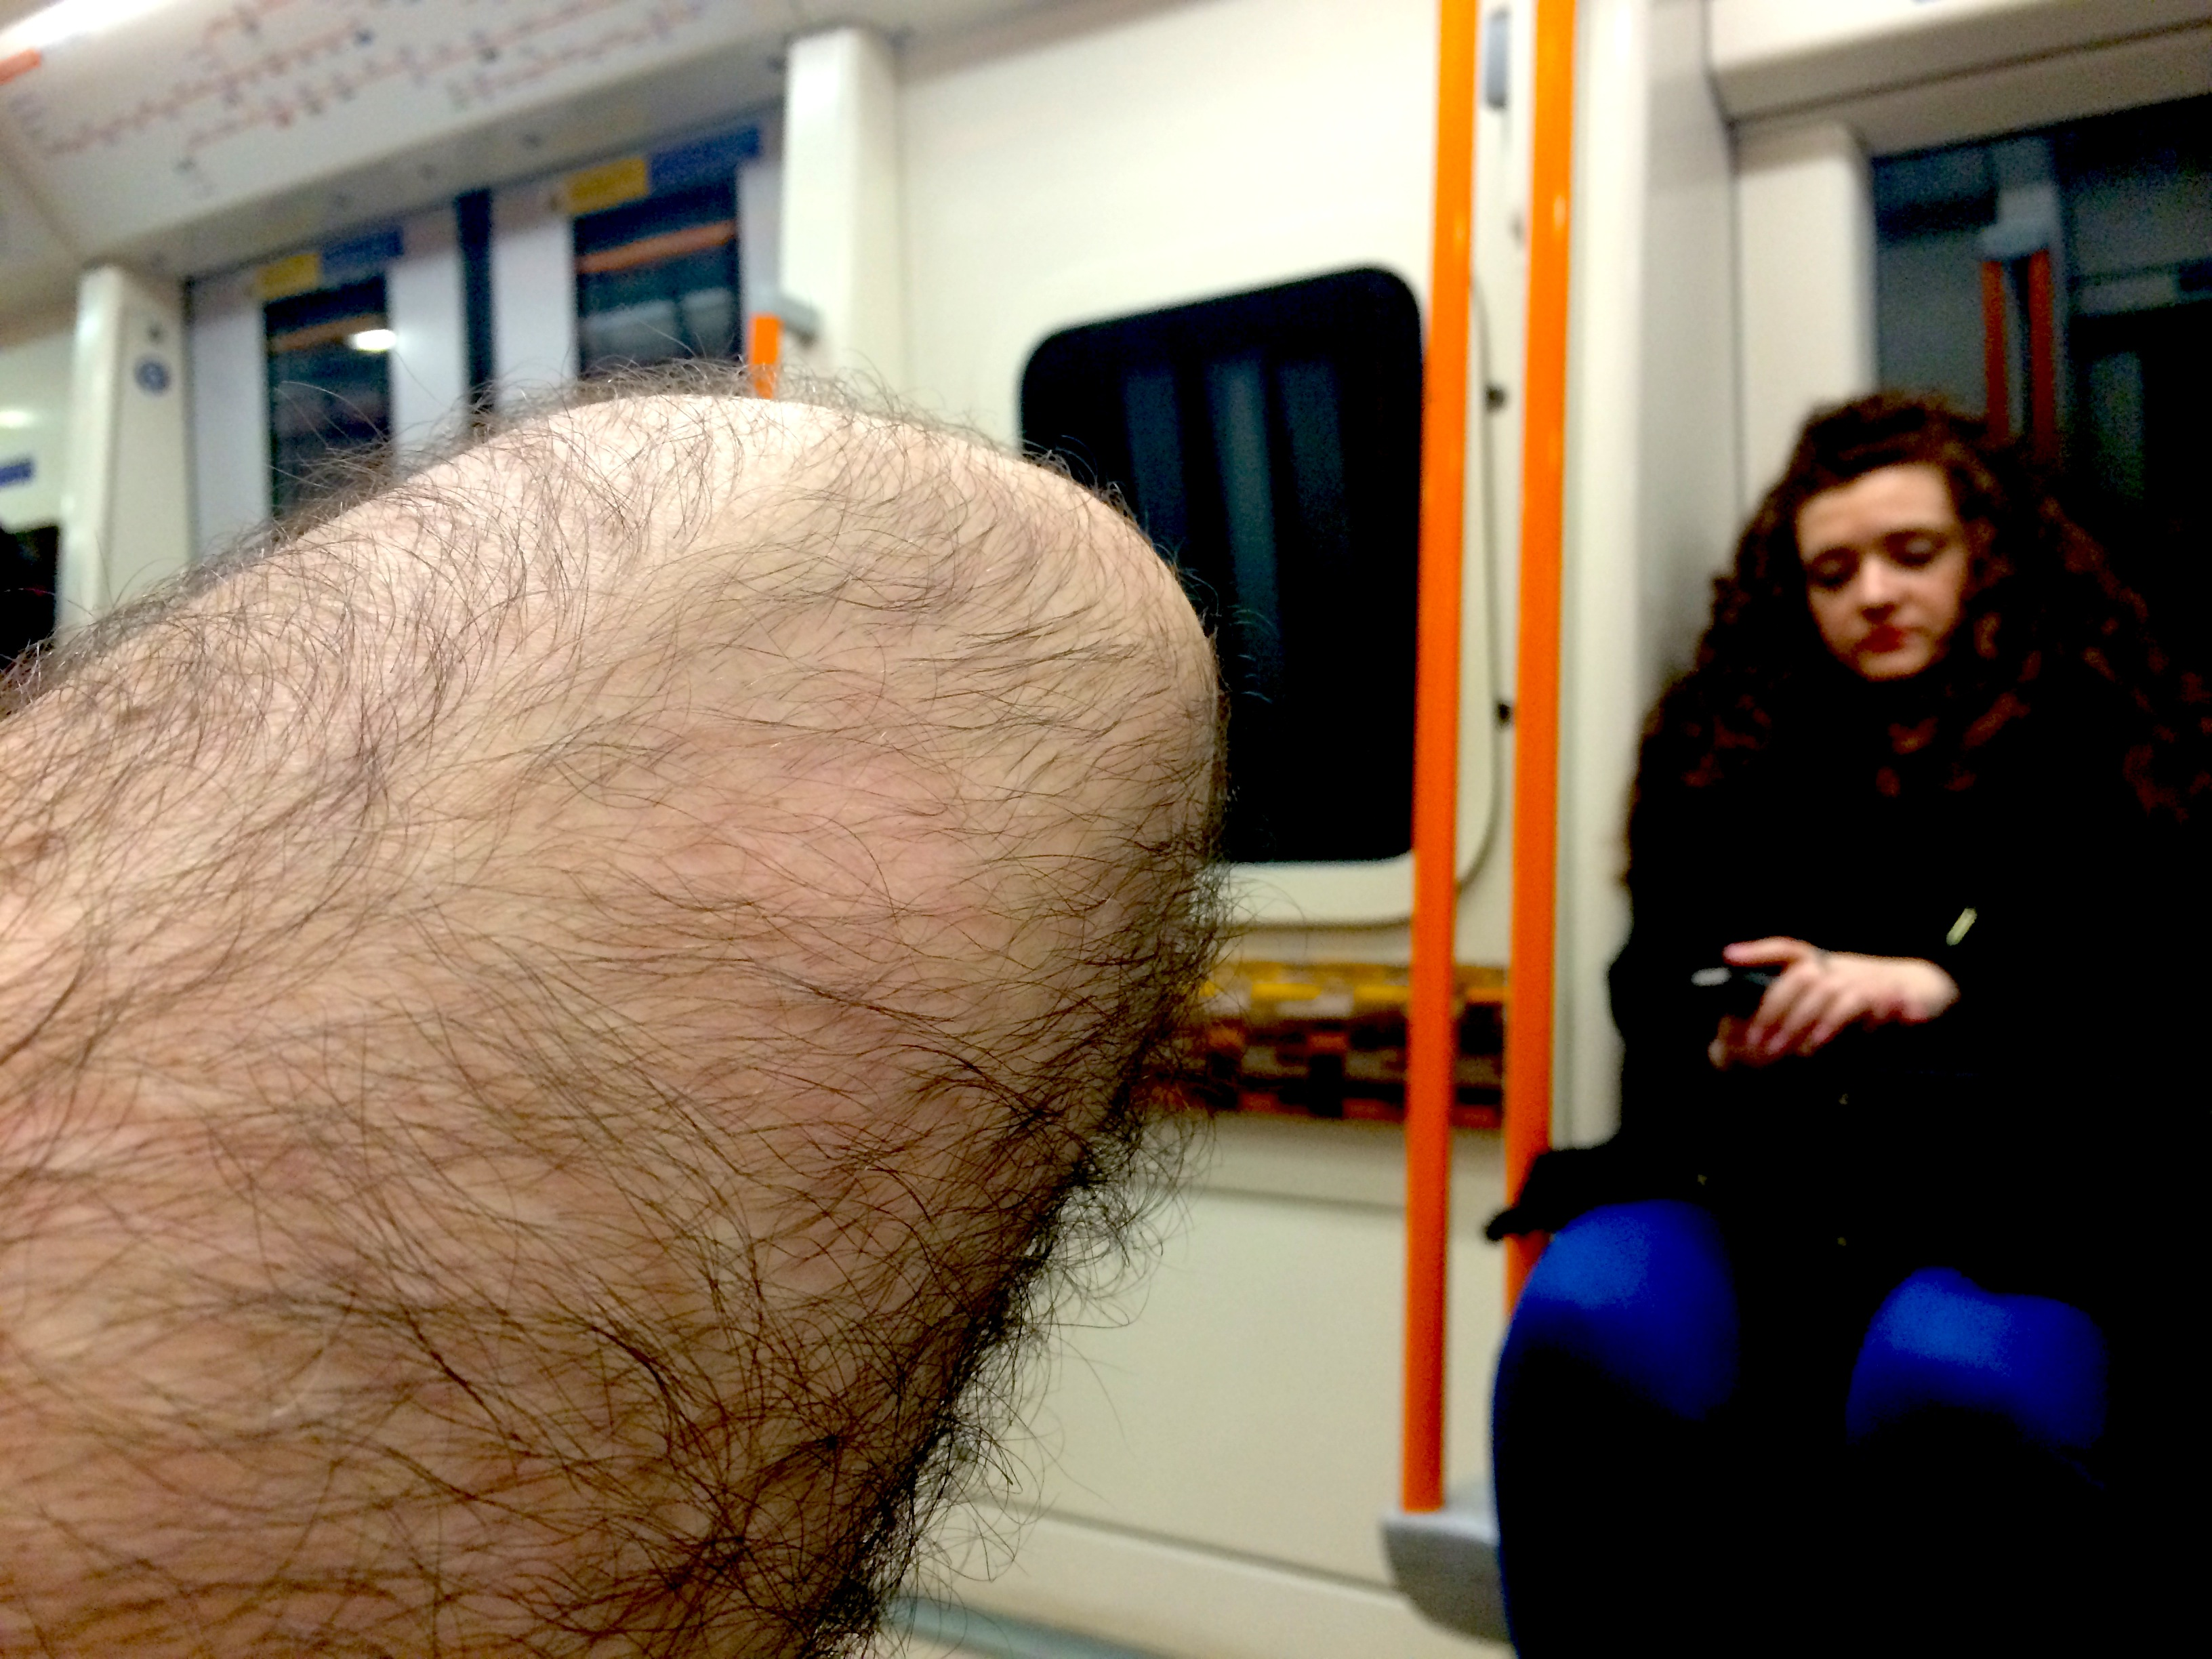 close ups of people on buses (& trains & boats & planes)